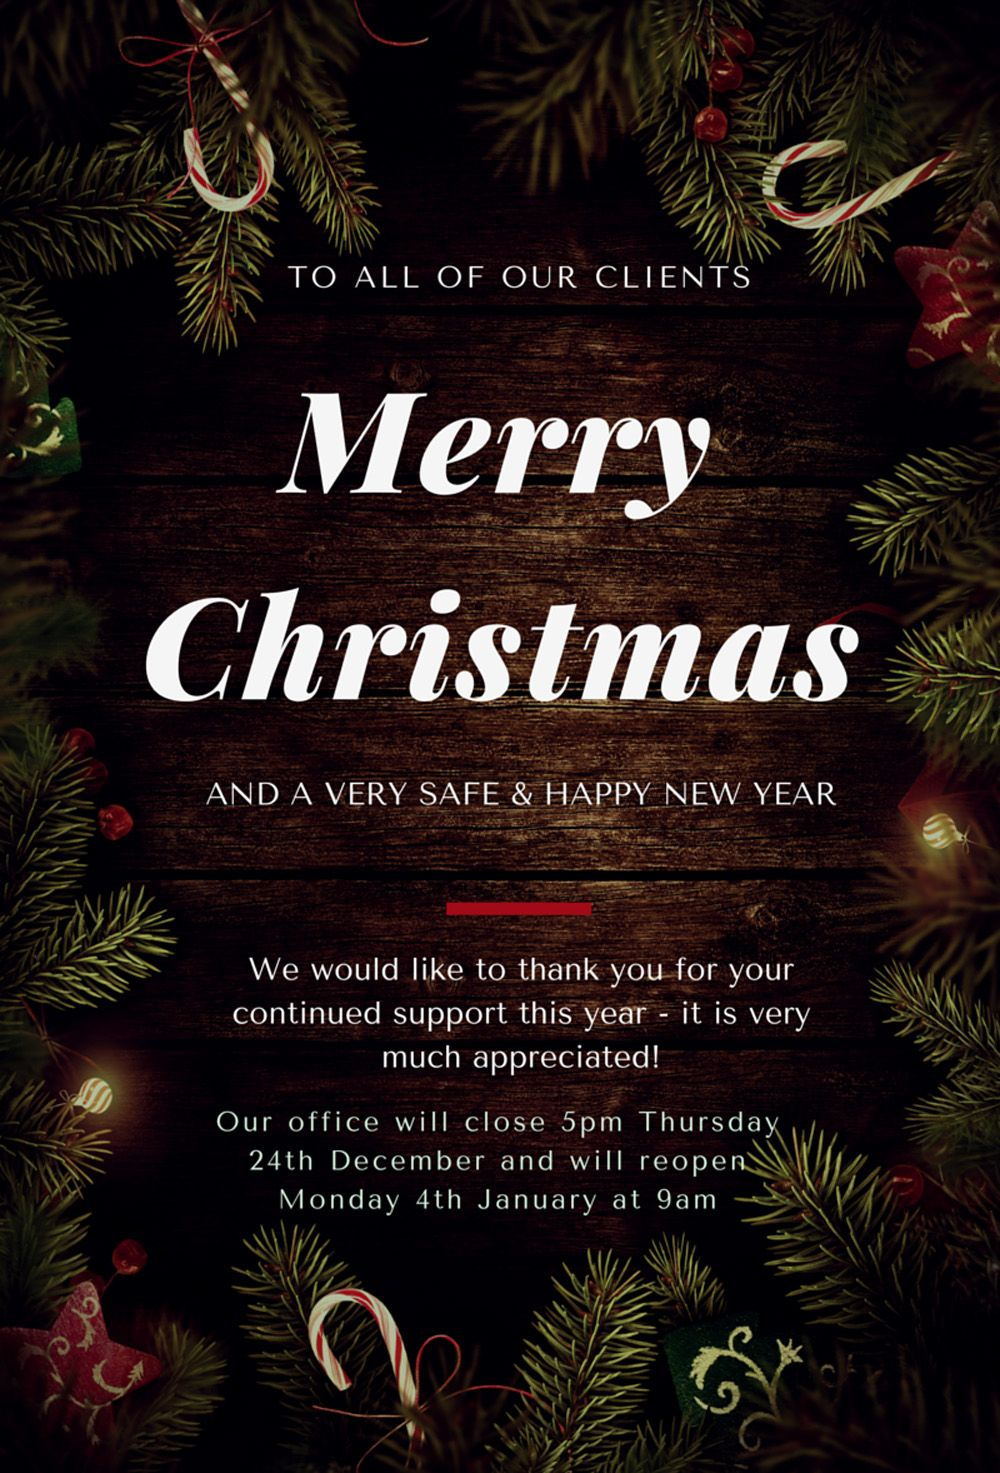 35 Christmas Message For Clients Some Events Christmas Greetings Messages Merry Christmas Message Christmas Messages